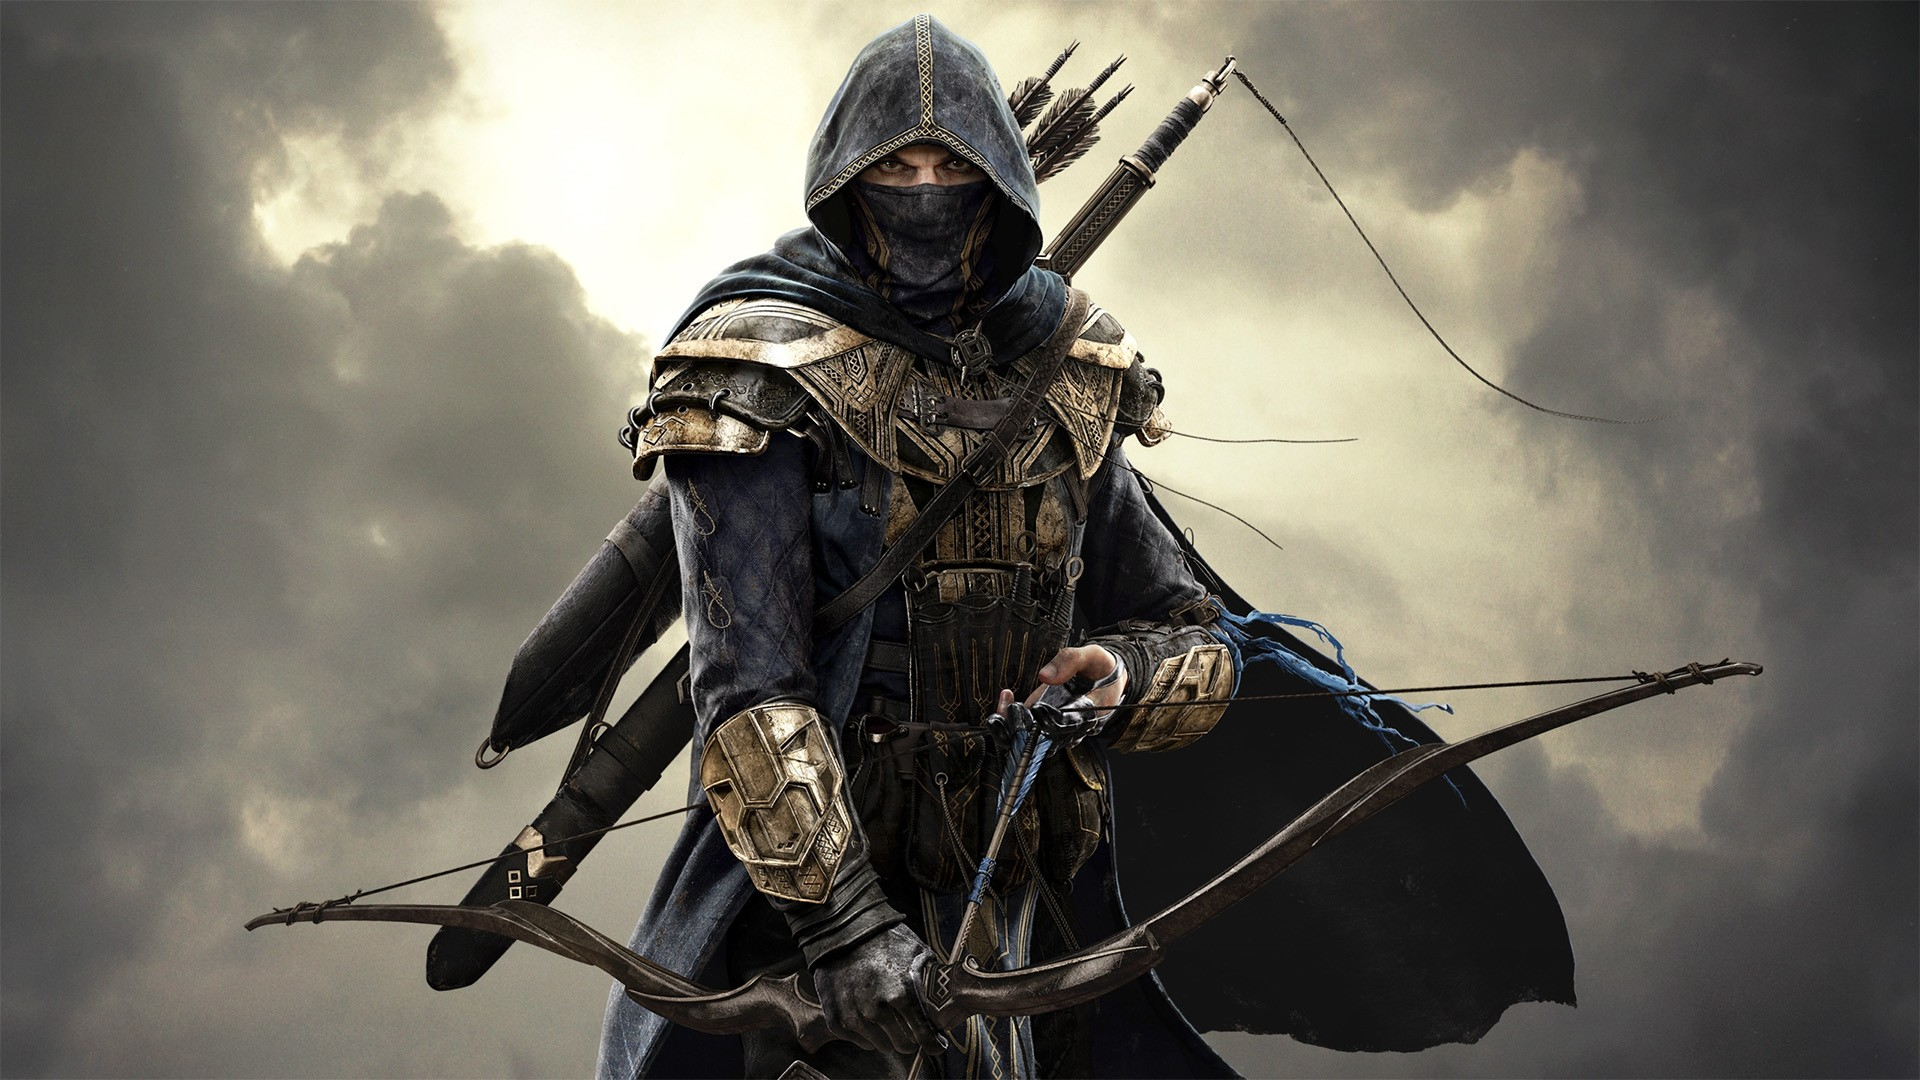 Free Download The Elder Scrolls Online 1920x1080 For Your